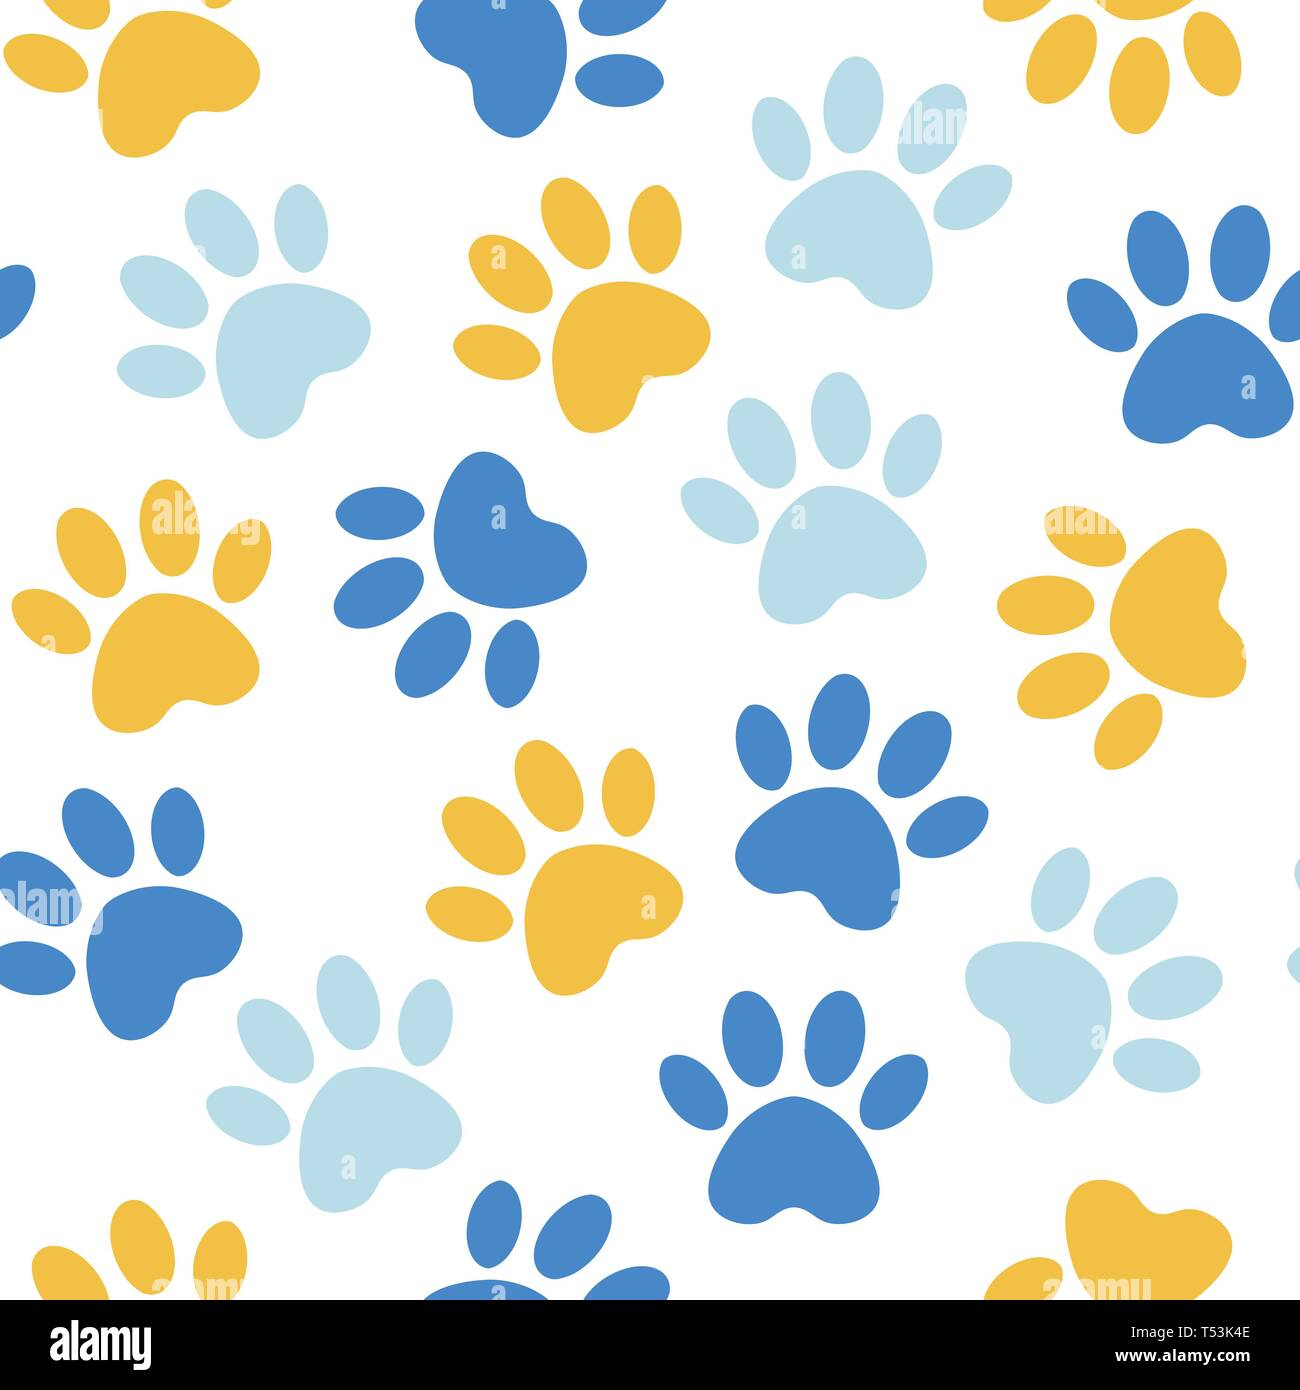 220fb7e1032f backdrop with silhouettes of cat or dog footprint.red Vector illustration  animal paw track pattern. Paw print seamless.